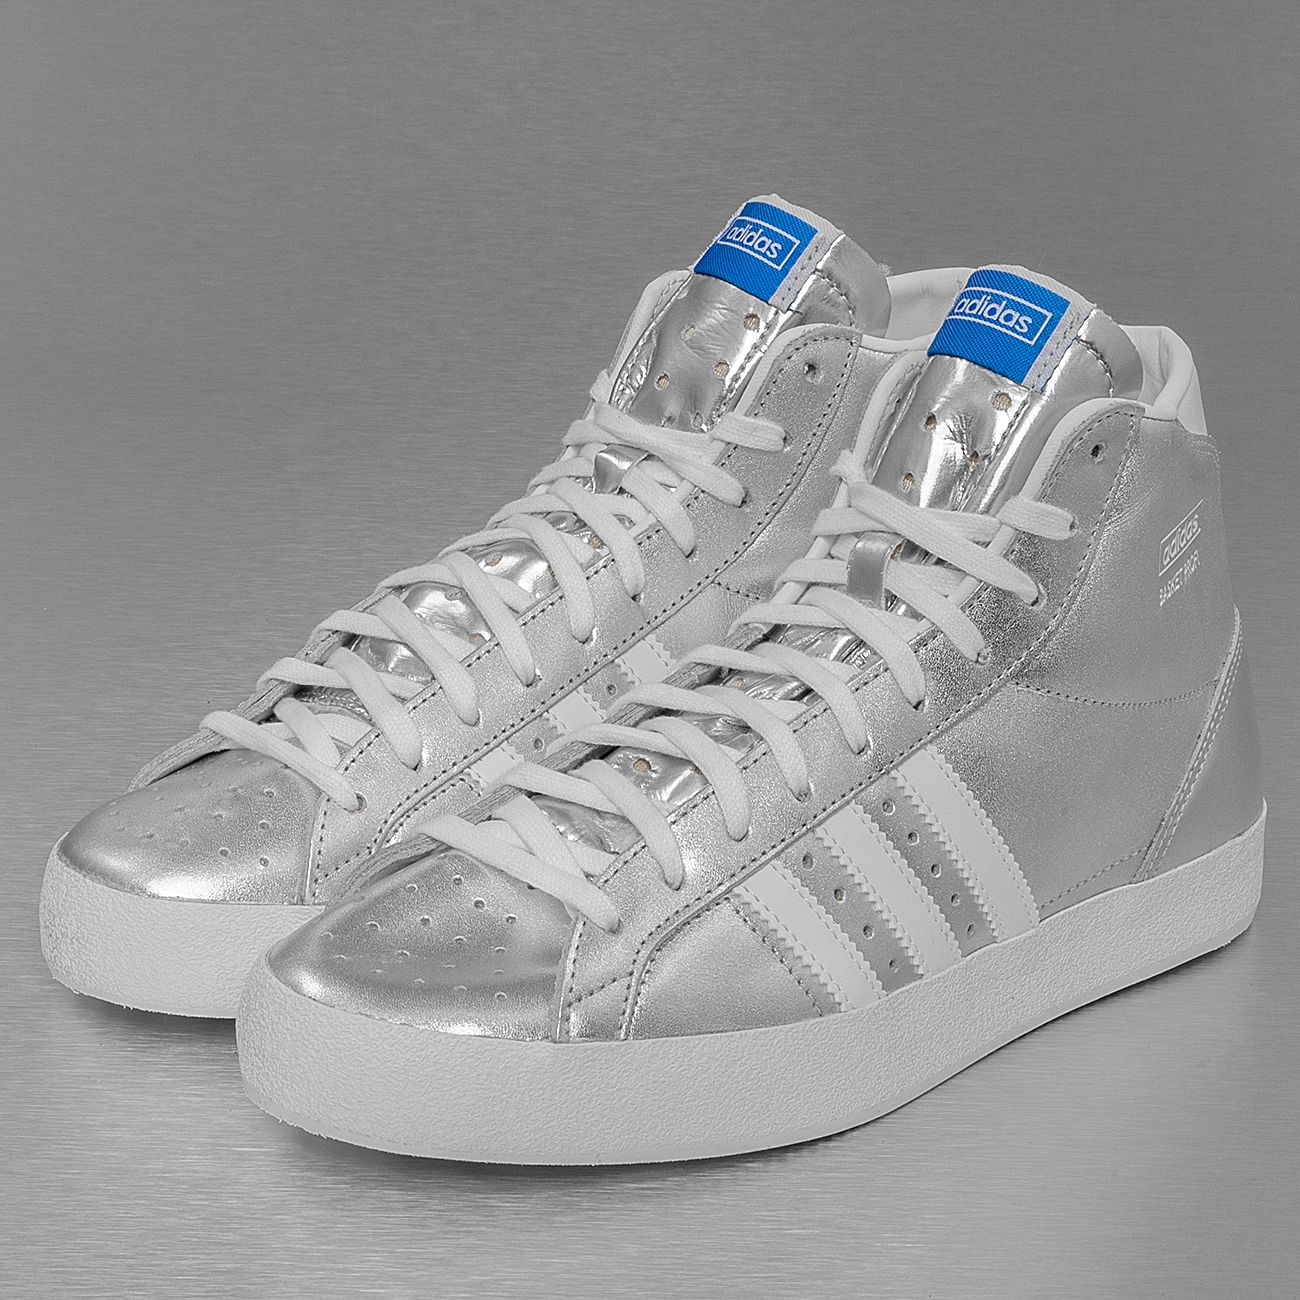 Adidas Basket Profi Basketball Shoes Metallic Silver/Running White